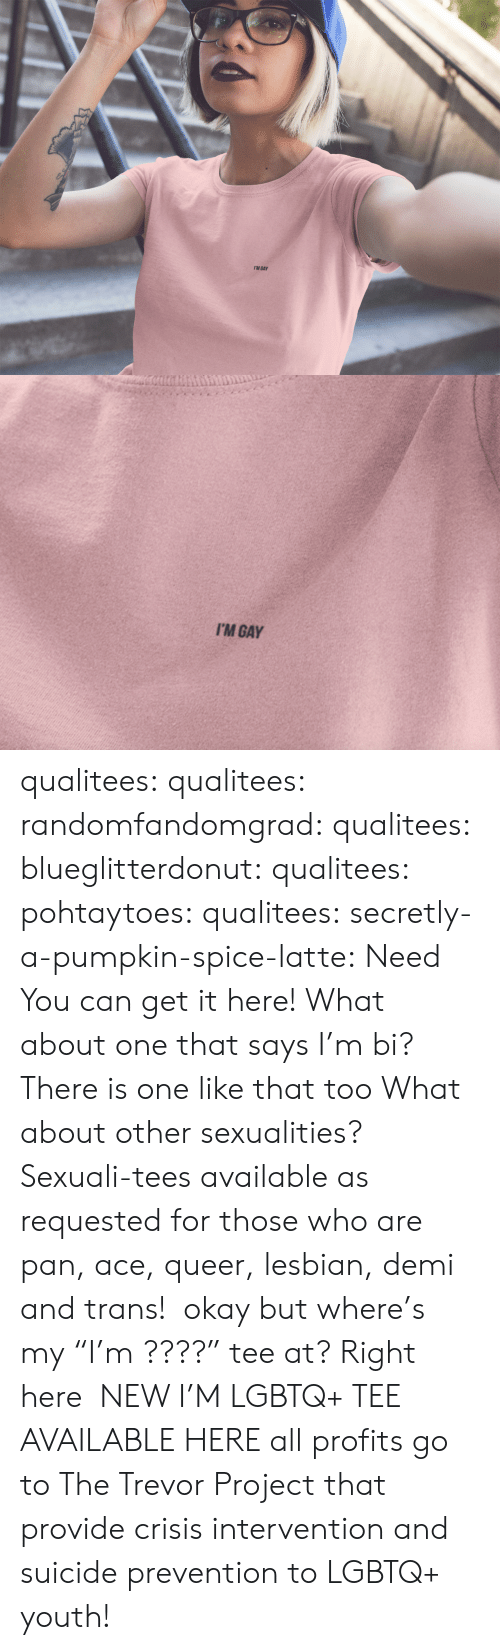 """Target, Tumblr, and Blog: I'M GAY   I'M GAY qualitees: qualitees:  randomfandomgrad:  qualitees:  blueglitterdonut:  qualitees:   pohtaytoes:  qualitees:   secretly-a-pumpkin-spice-latte: Need You can get it here!   What about one that says I'm bi?  There is one like that too   What about other sexualities?  Sexuali-tees available as requested for those who are pan, ace,queer,lesbian, demi and trans!  okay but where's my""""I'm ????"""" tee at?  Right here  NEW I'M LGBTQ+ TEE AVAILABLE HEREall profits go to The Trevor Project that provide crisis intervention and suicide prevention to LGBTQ+ youth!"""